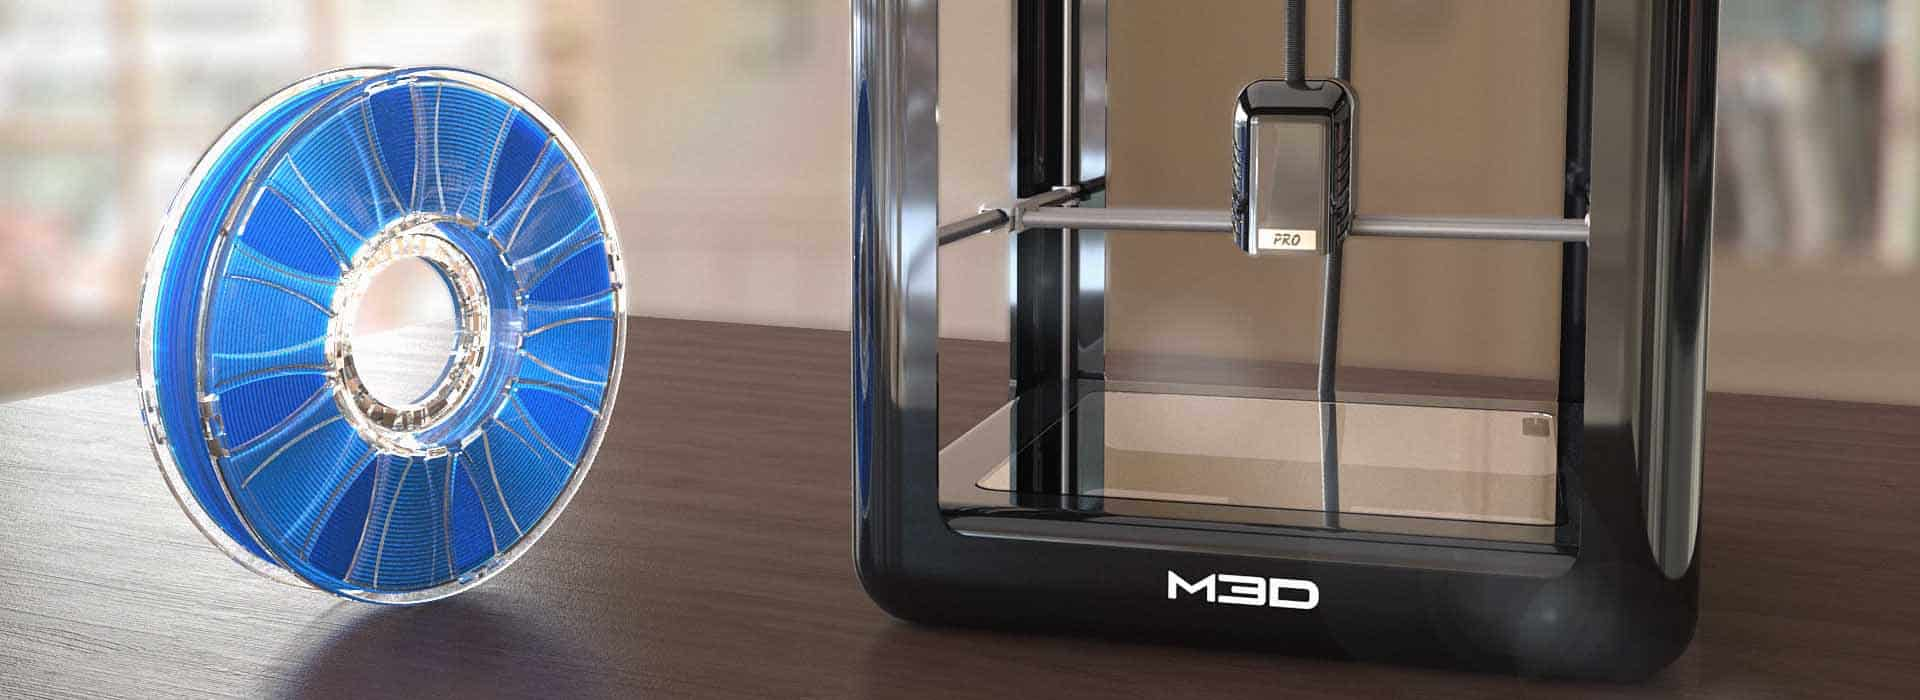 M3D Printer Review